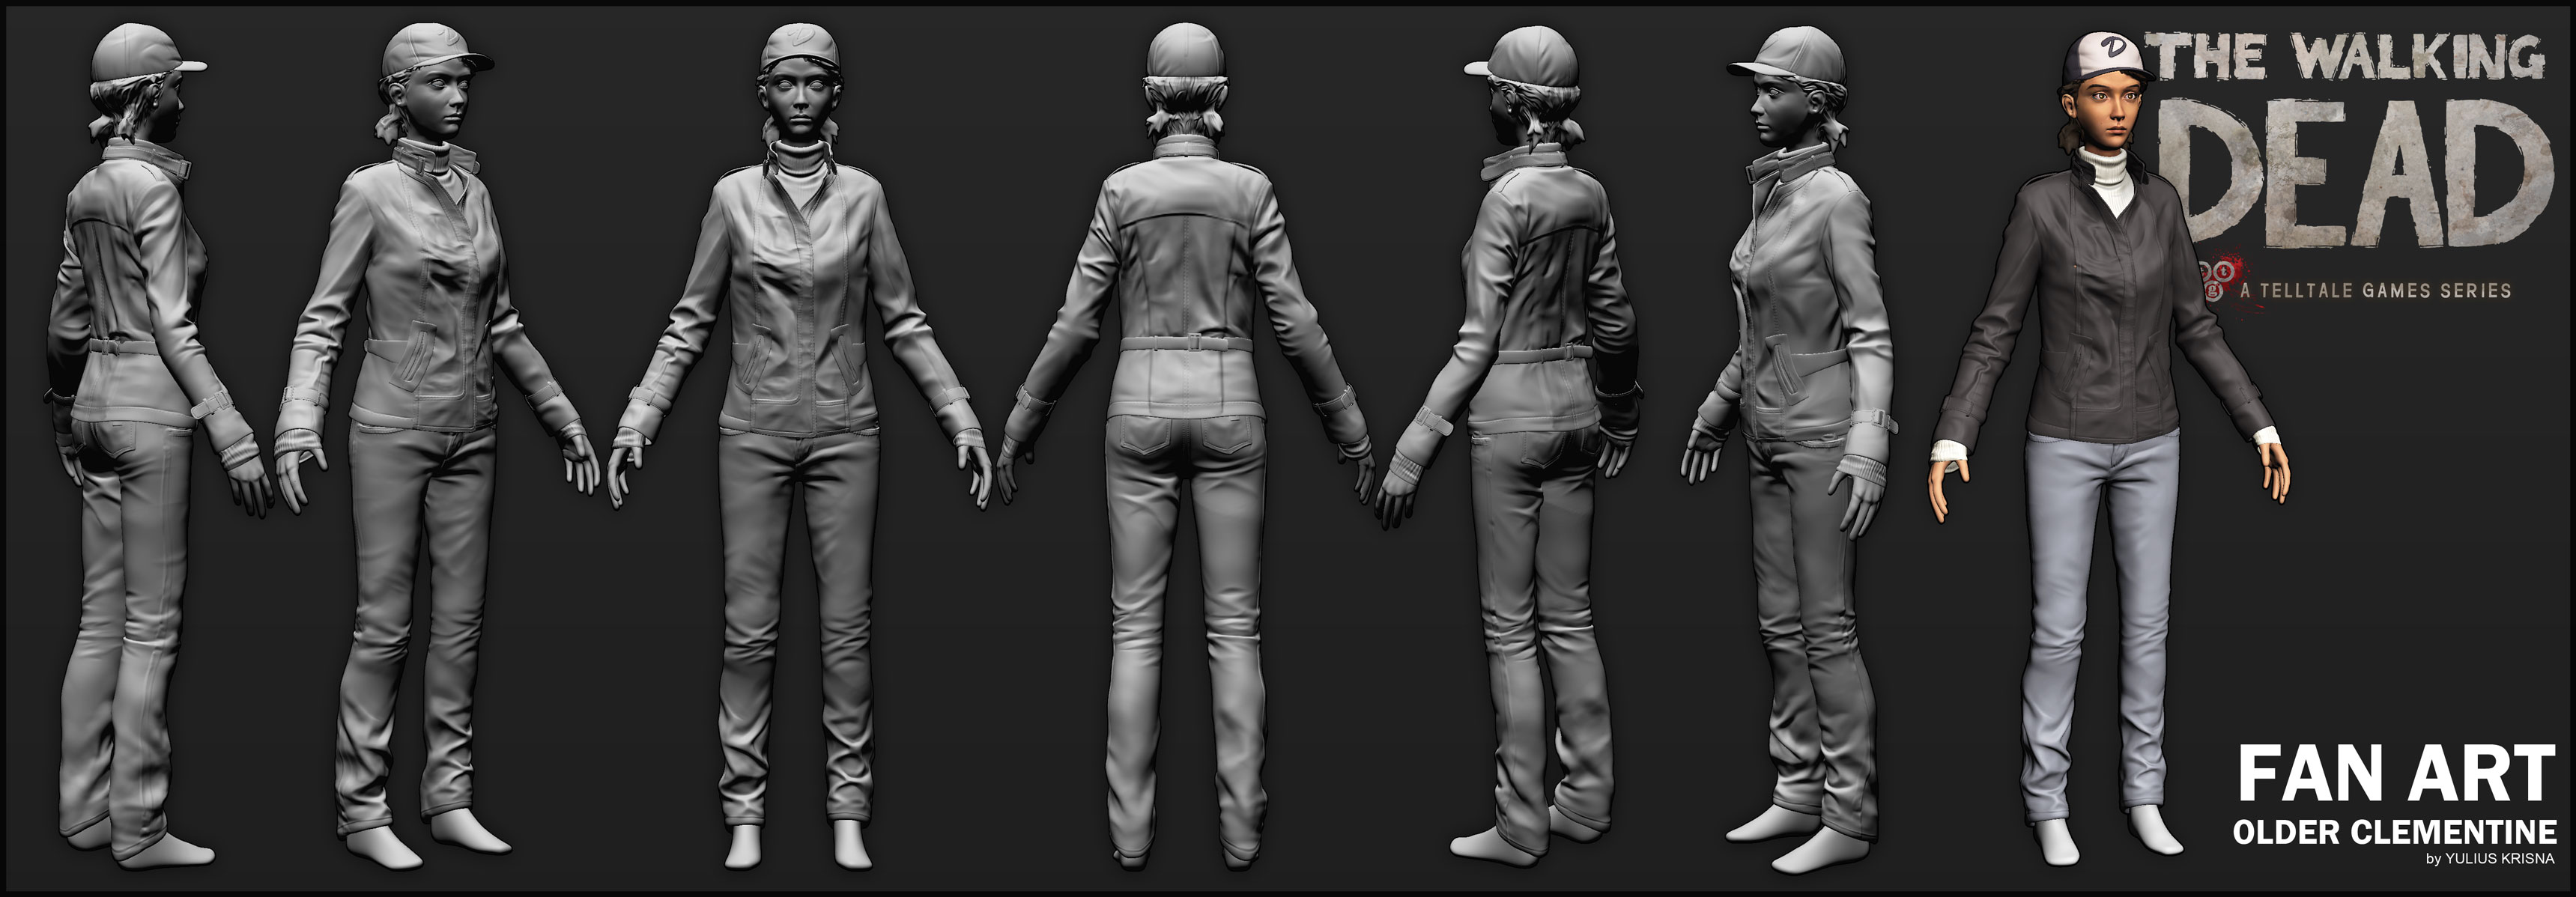 _wip_2__older_clementine_from_telltale_s_twd_by_yuliuskrisna-d878bym.jpg